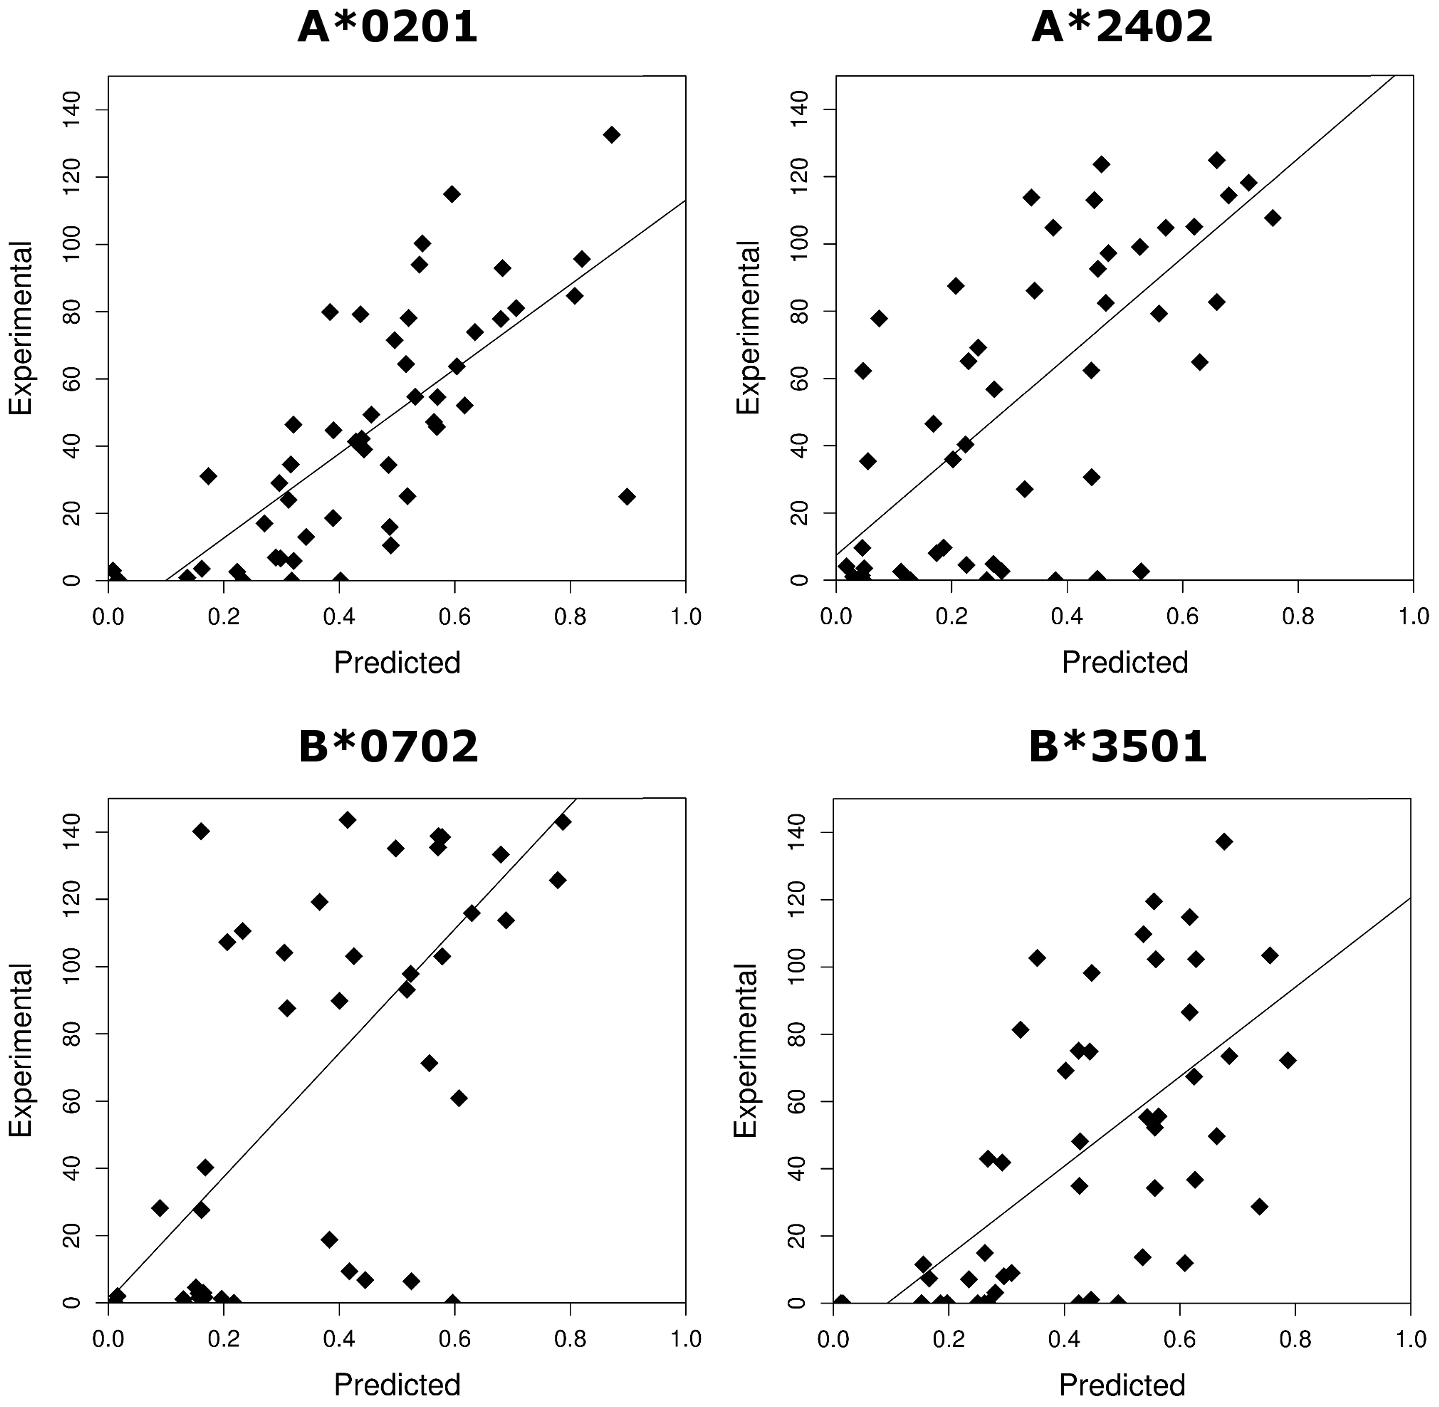 The correlation between the experimentally measured binding affinities (% binding compared to control peptide) and the predicted binding affinities (1-log (affinity)) from Metaserver of 200 HLTV-1 peptides to 4 HLA class I molecules.